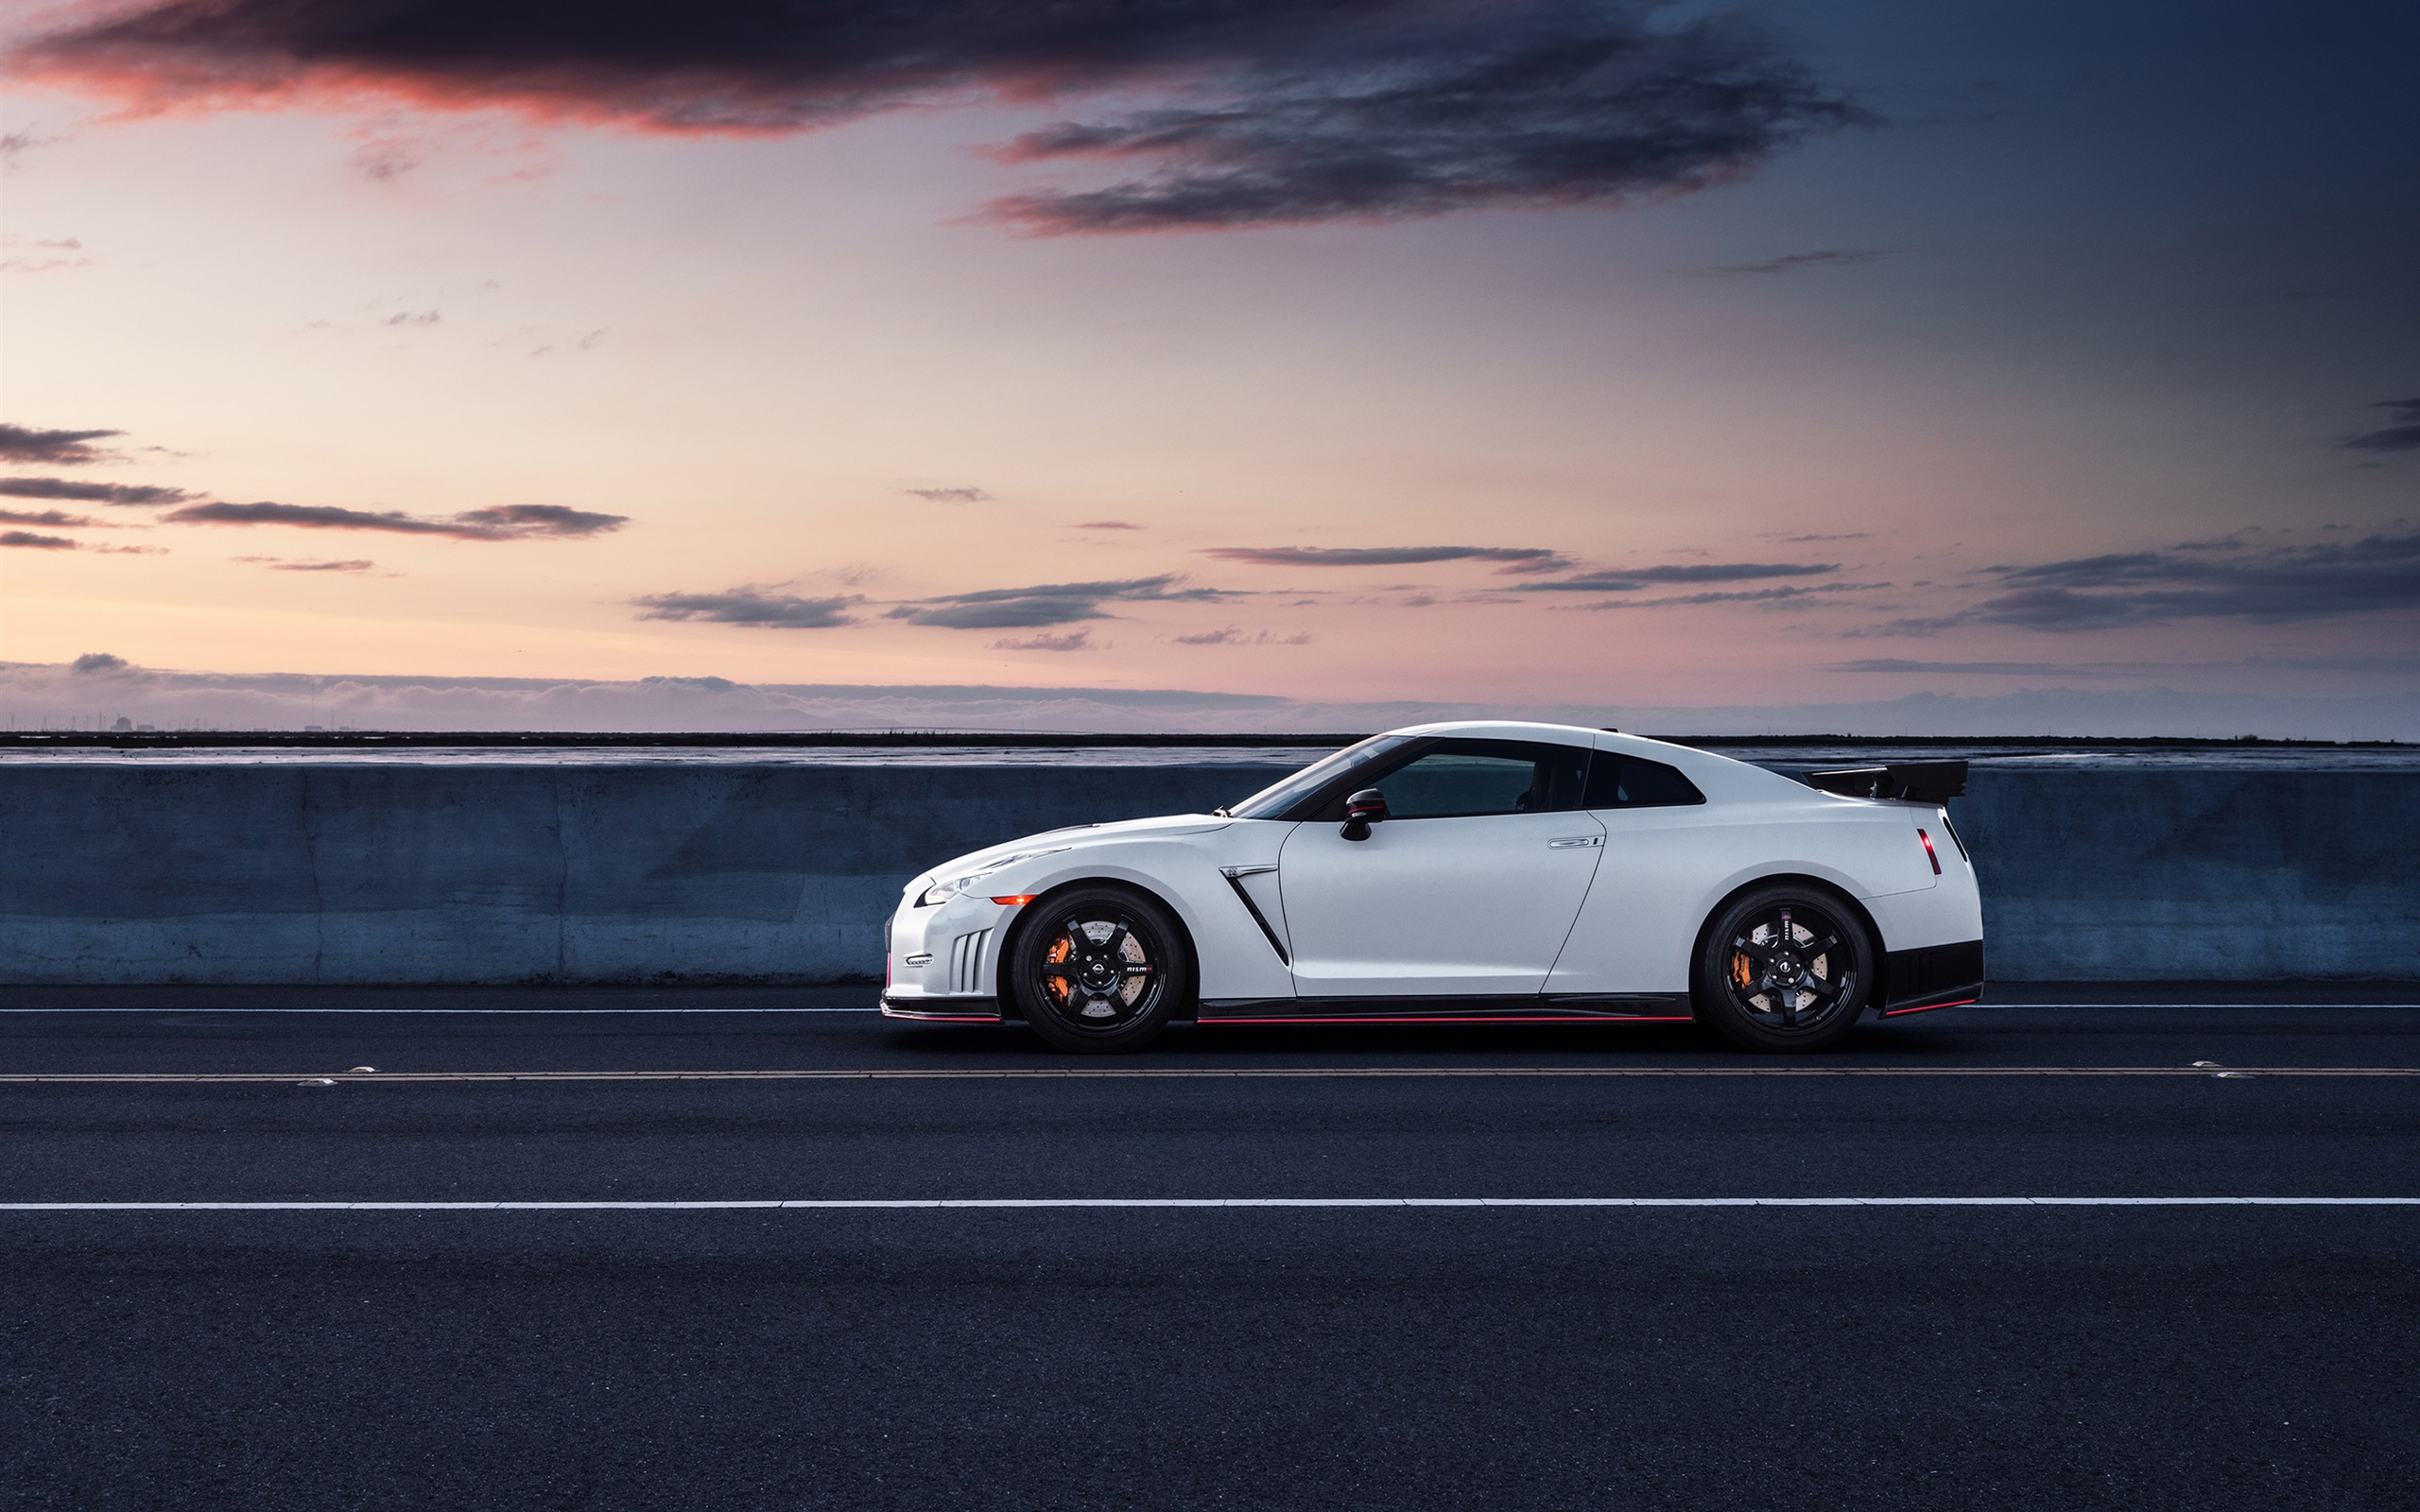 Wallpaper Nissan Gt R R35 White Car Side View 2560x1600 Hd Picture